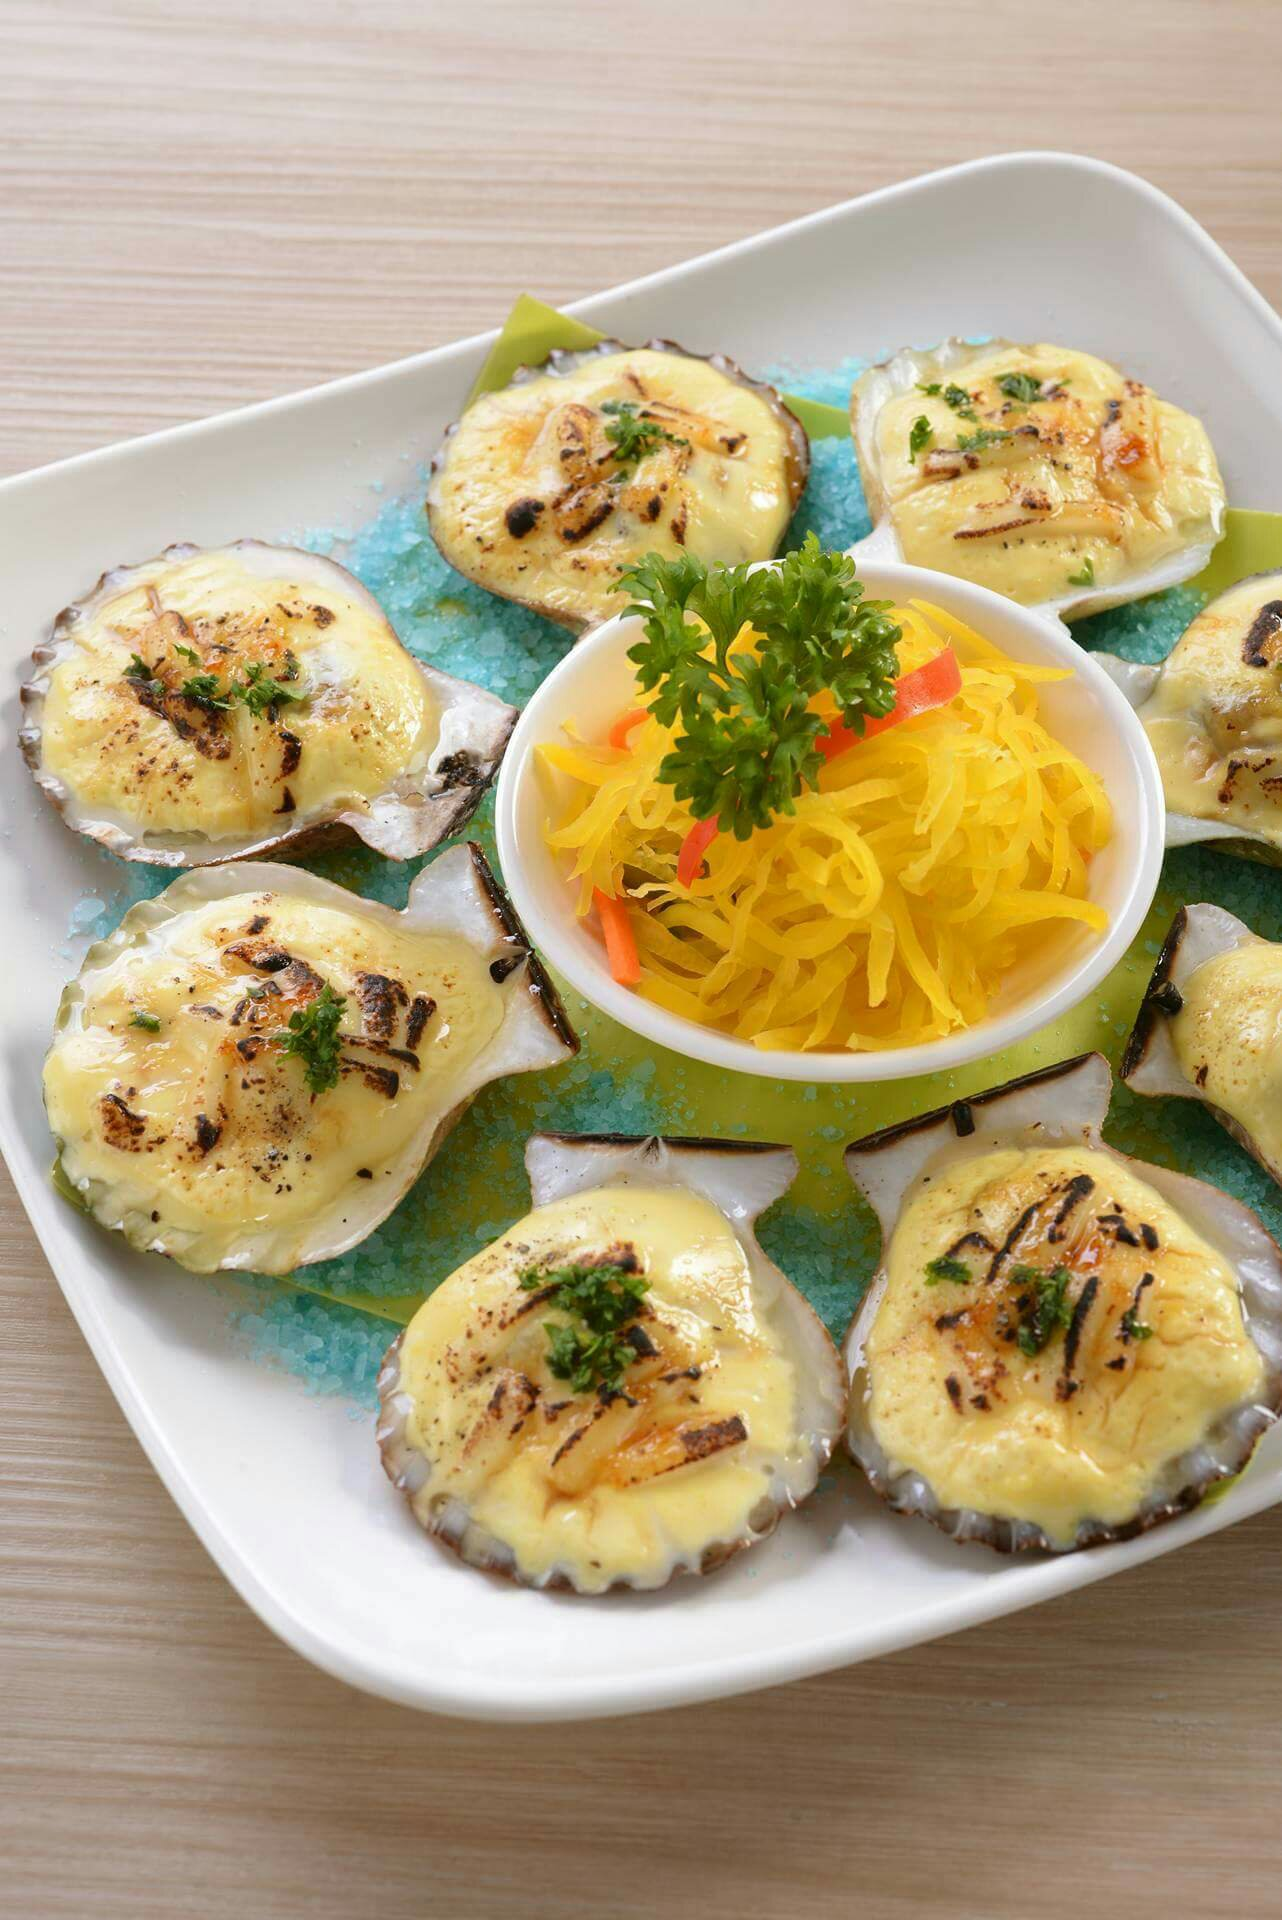 Choobi Choobi Baked Scallops